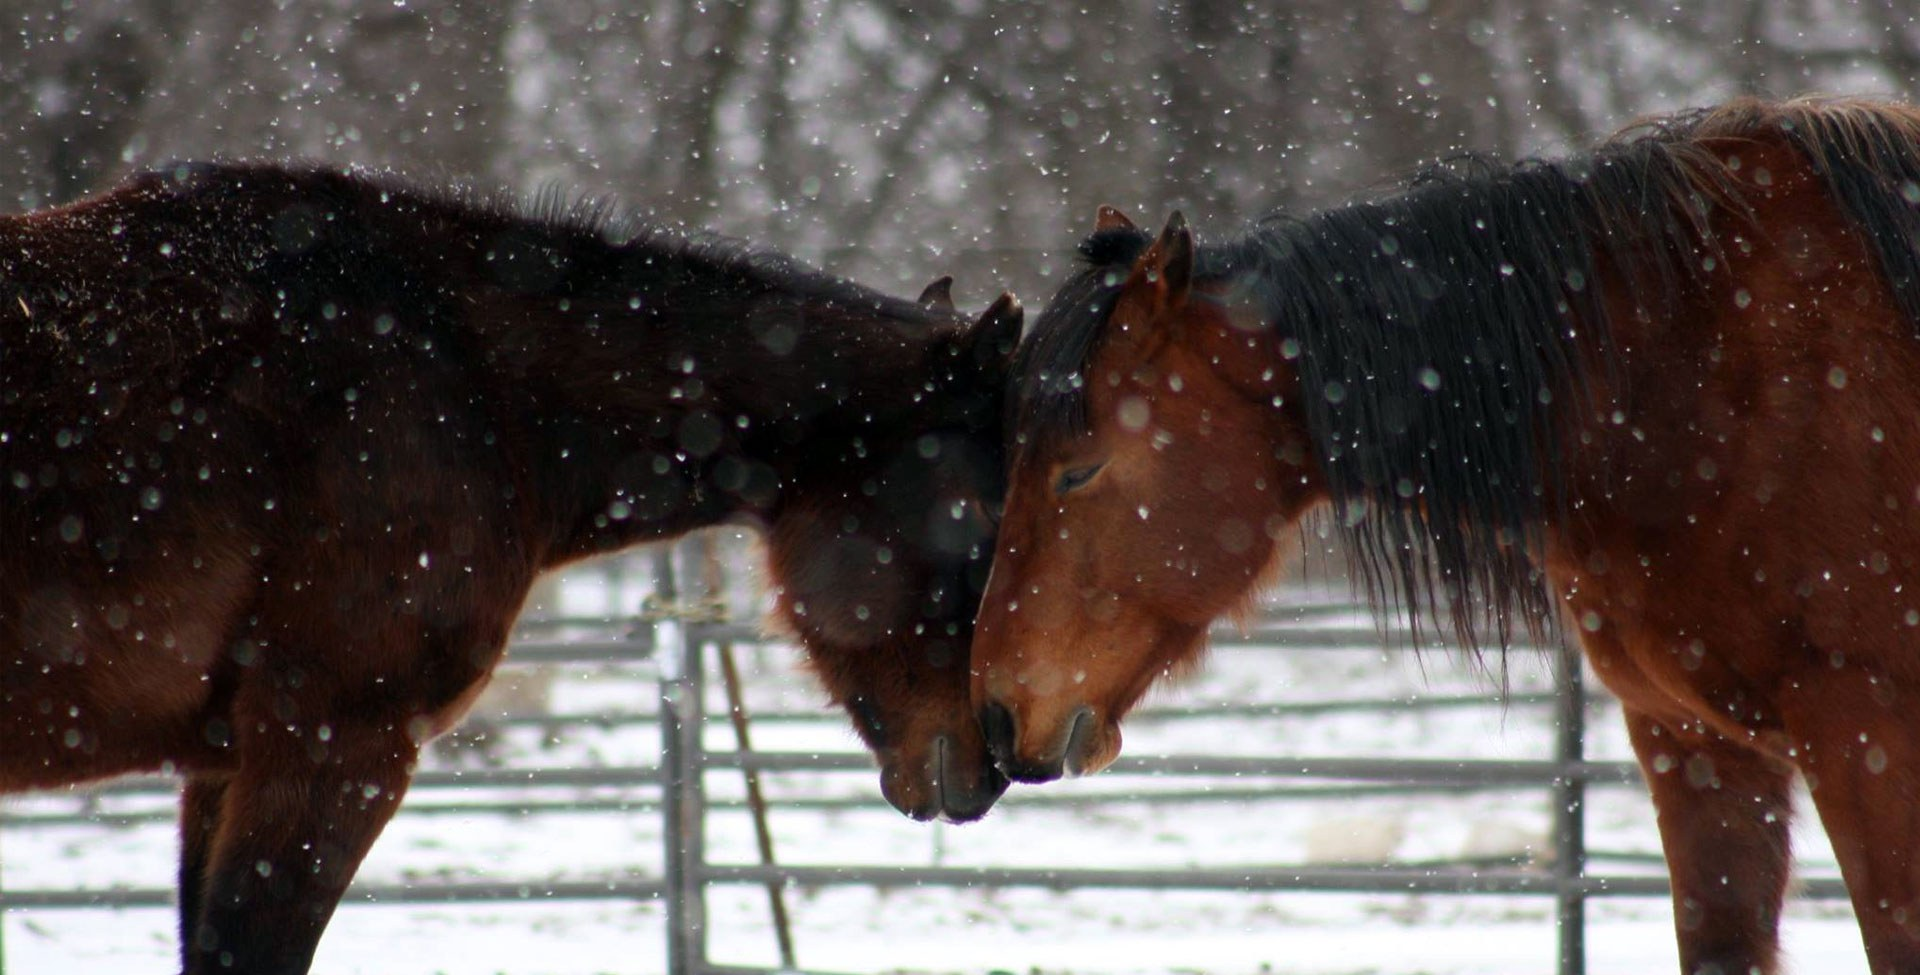 image of two horses in snow